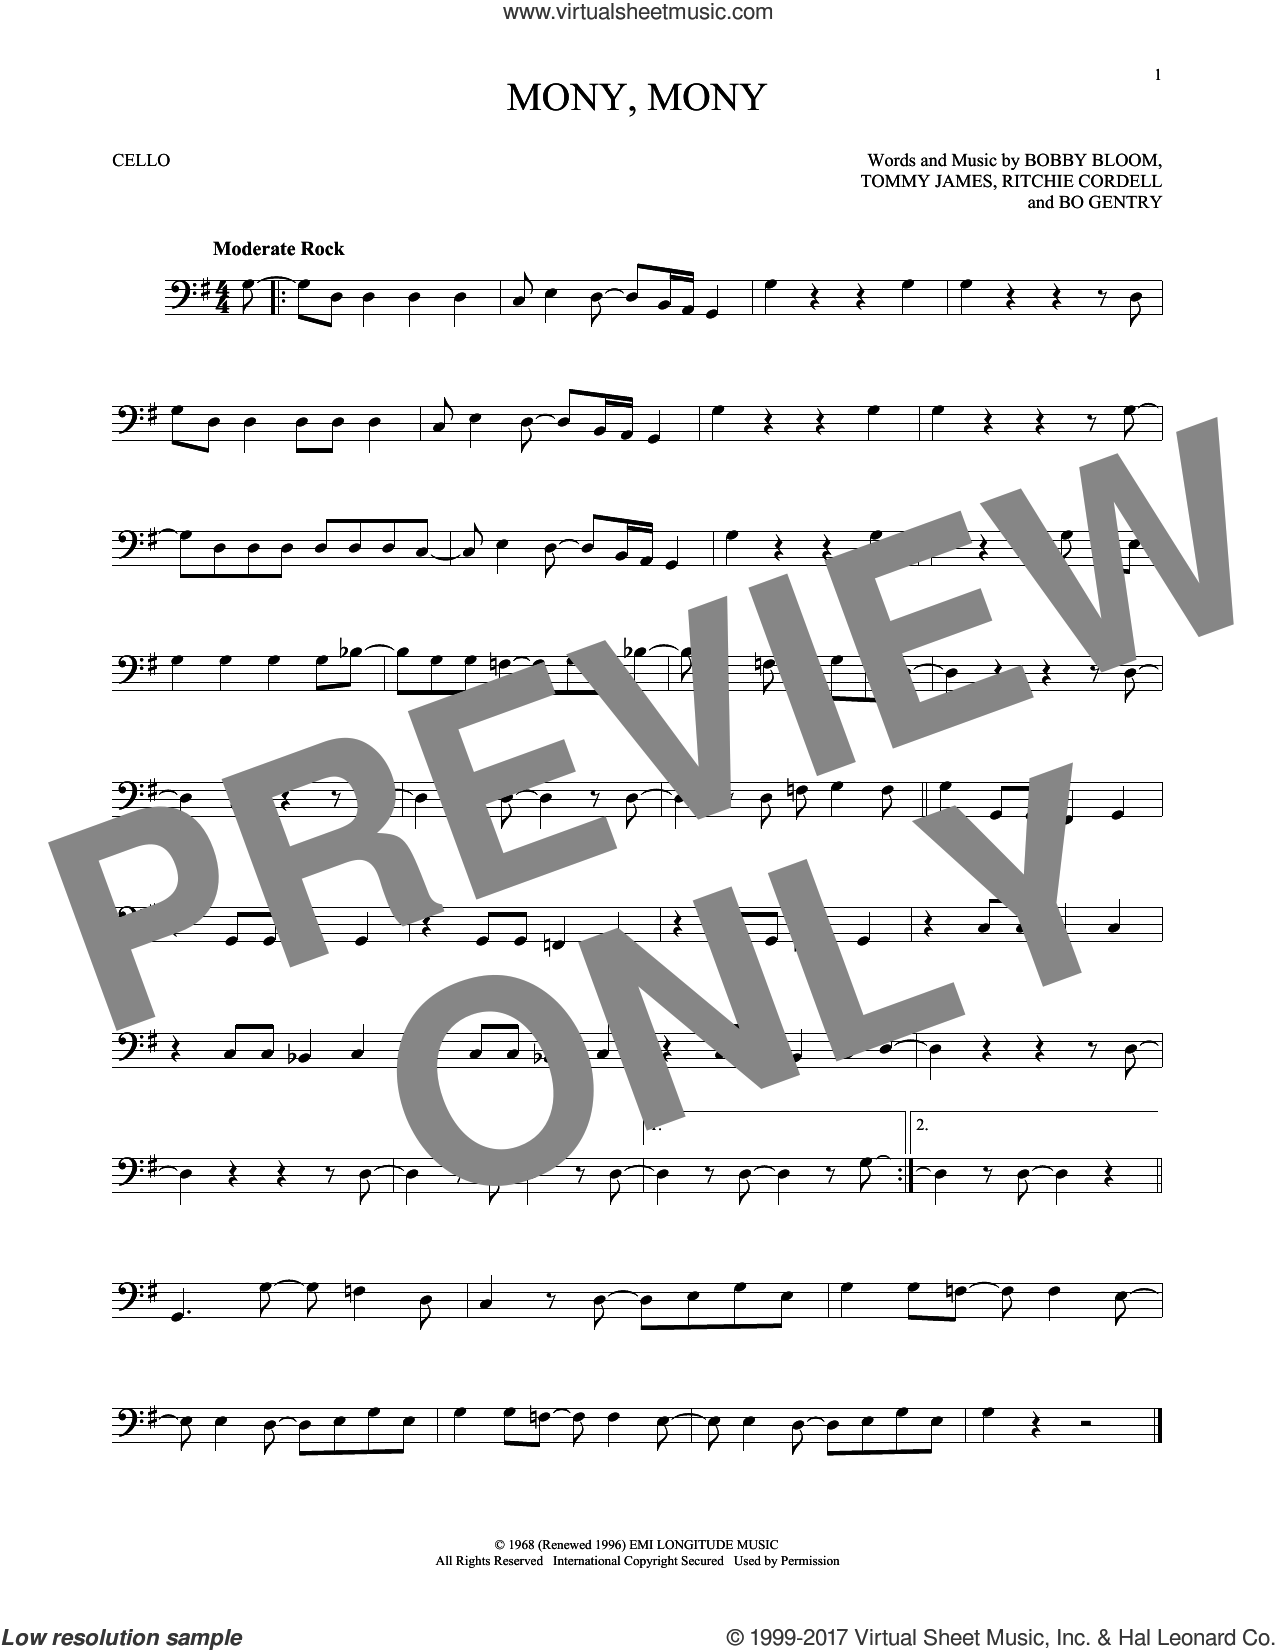 Mony, Mony sheet music for cello solo by Tommy James & The Shondells, Bo Gentry, Bobby Bloom and Ritchie Cordell, intermediate skill level